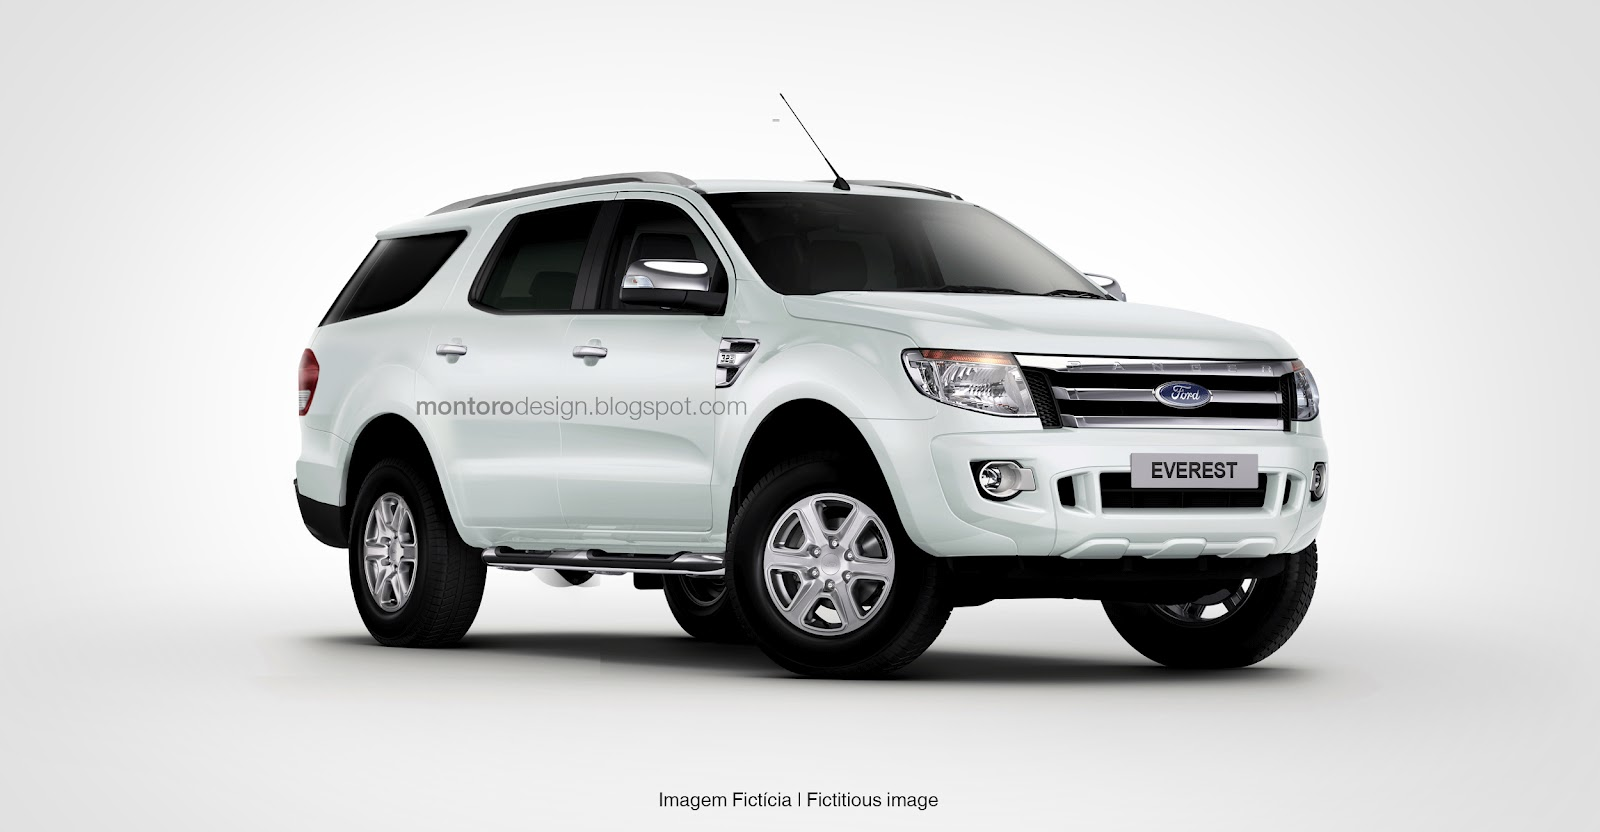 Ford Ranger SUV 2014 [Photos]